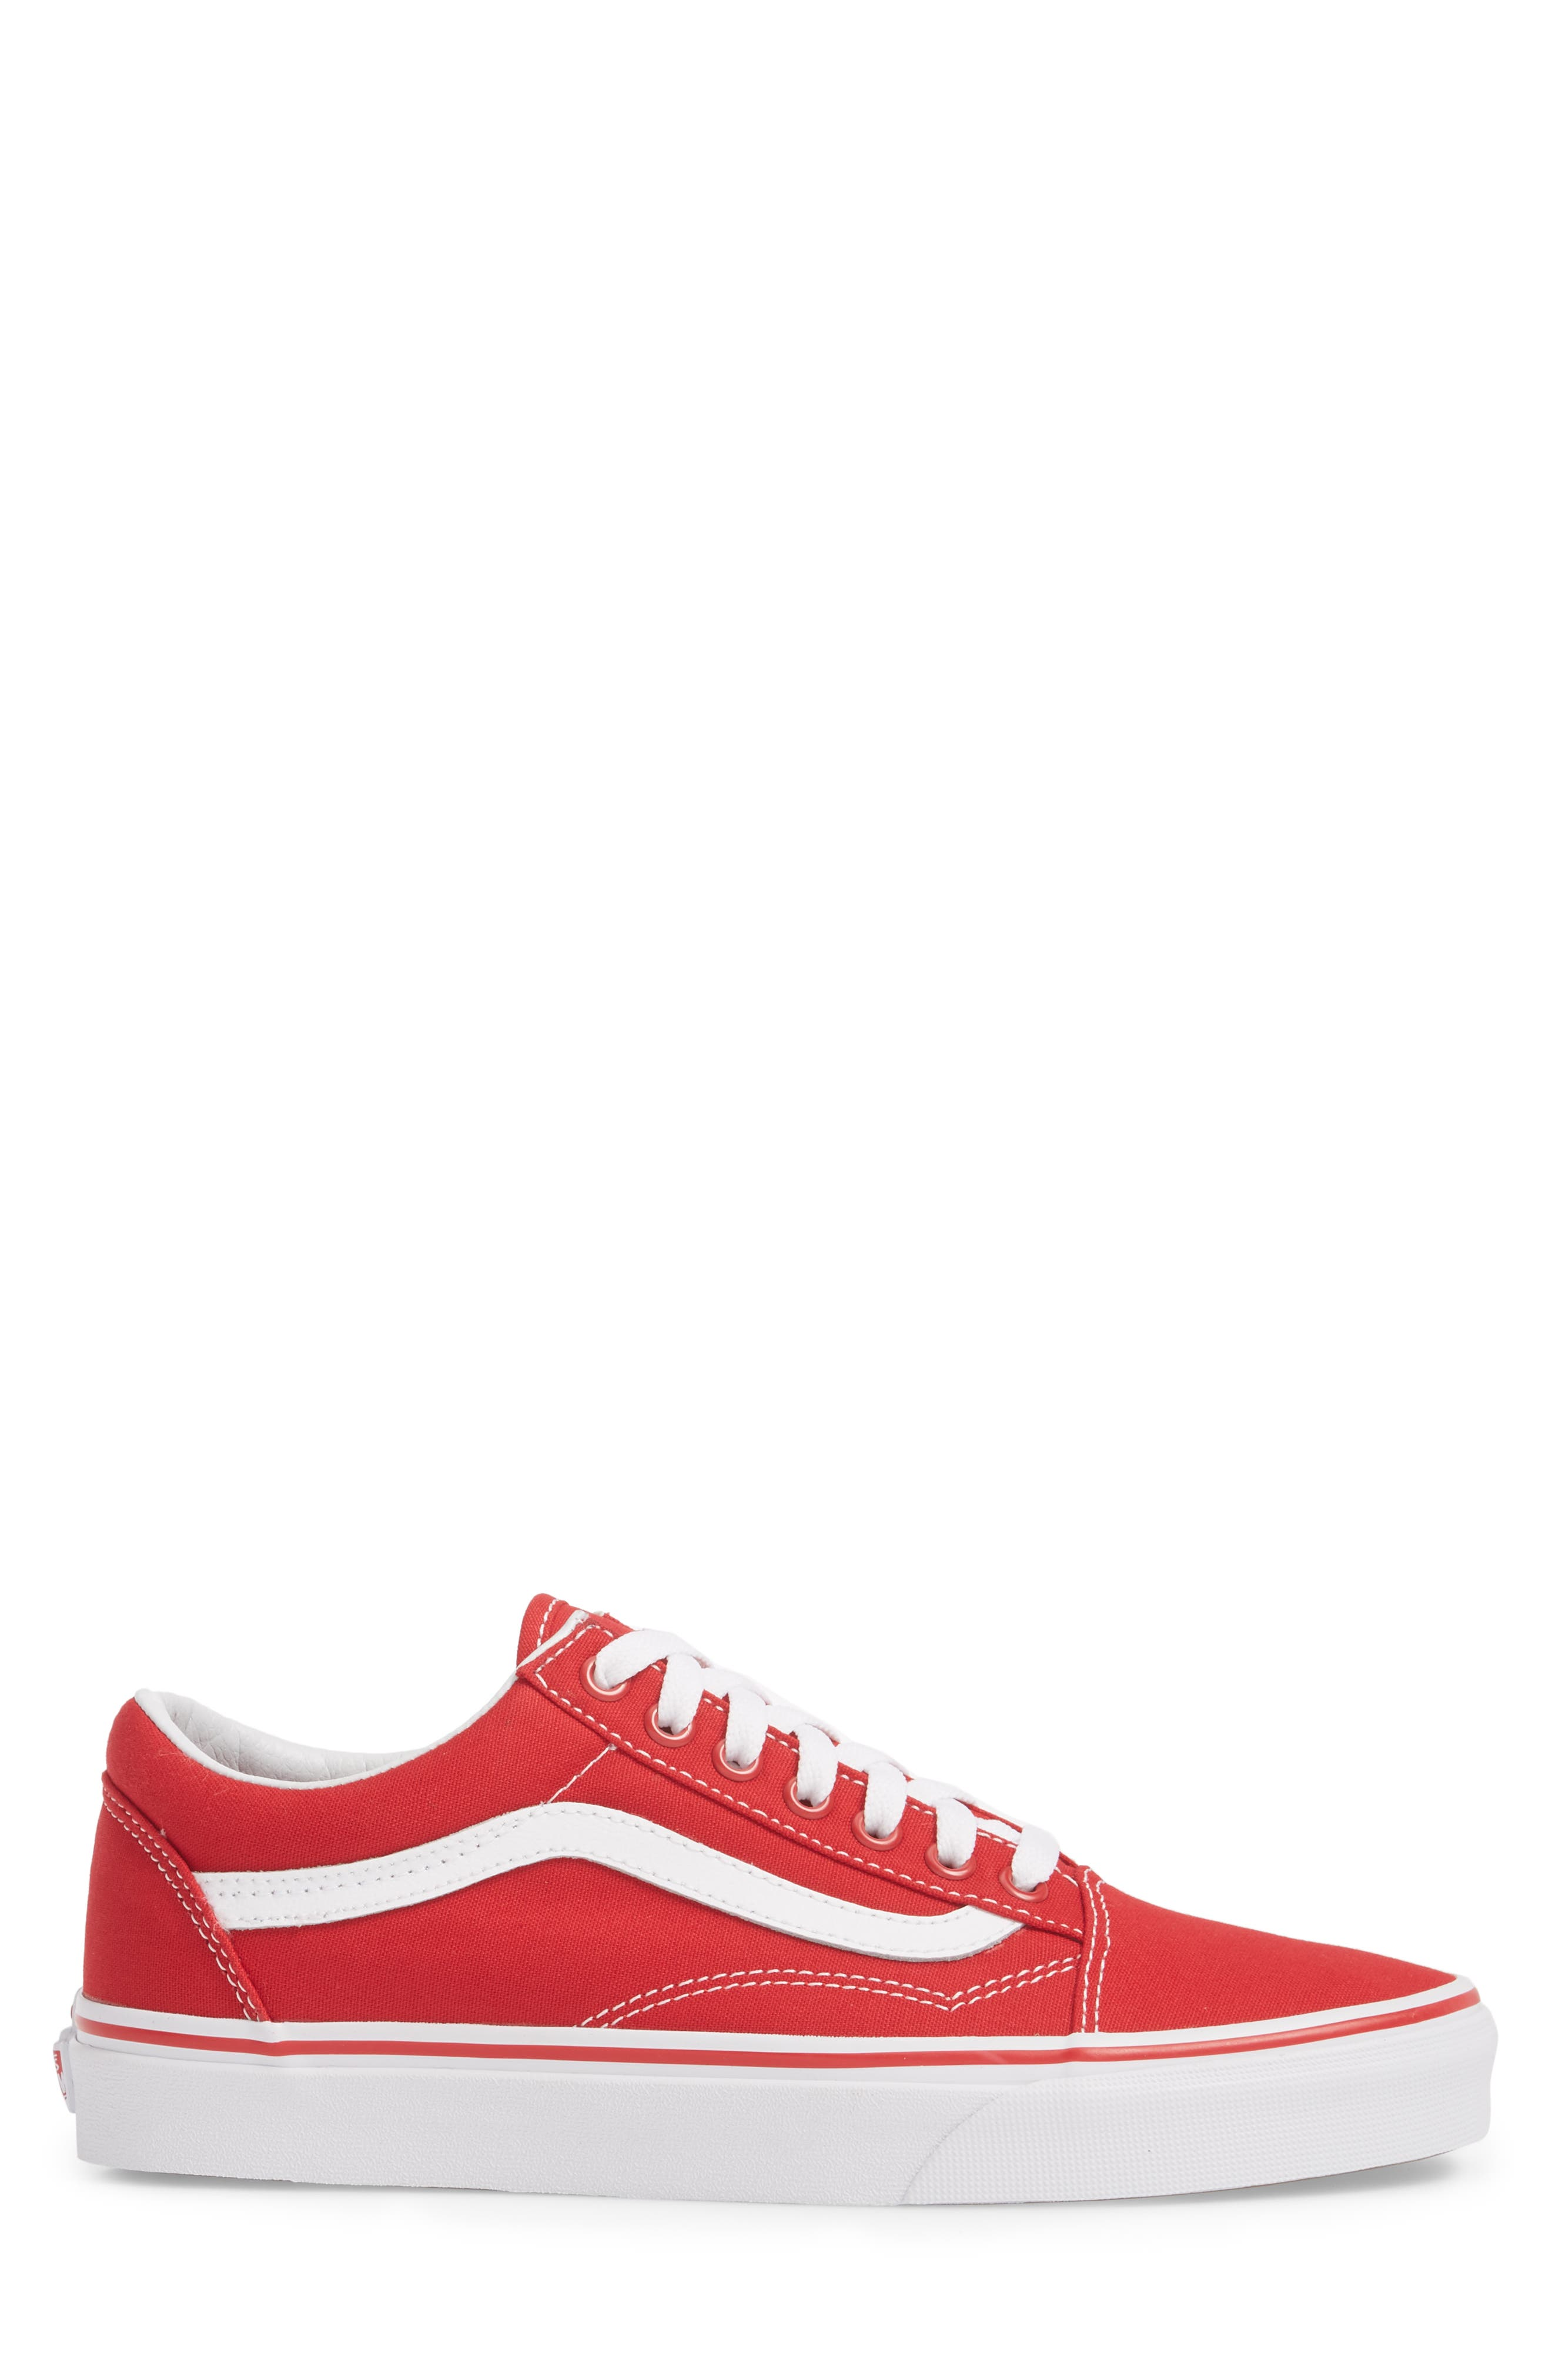 Old Skool Low Top Sneaker,                             Alternate thumbnail 3, color,                             FORMULA ONE CANVAS